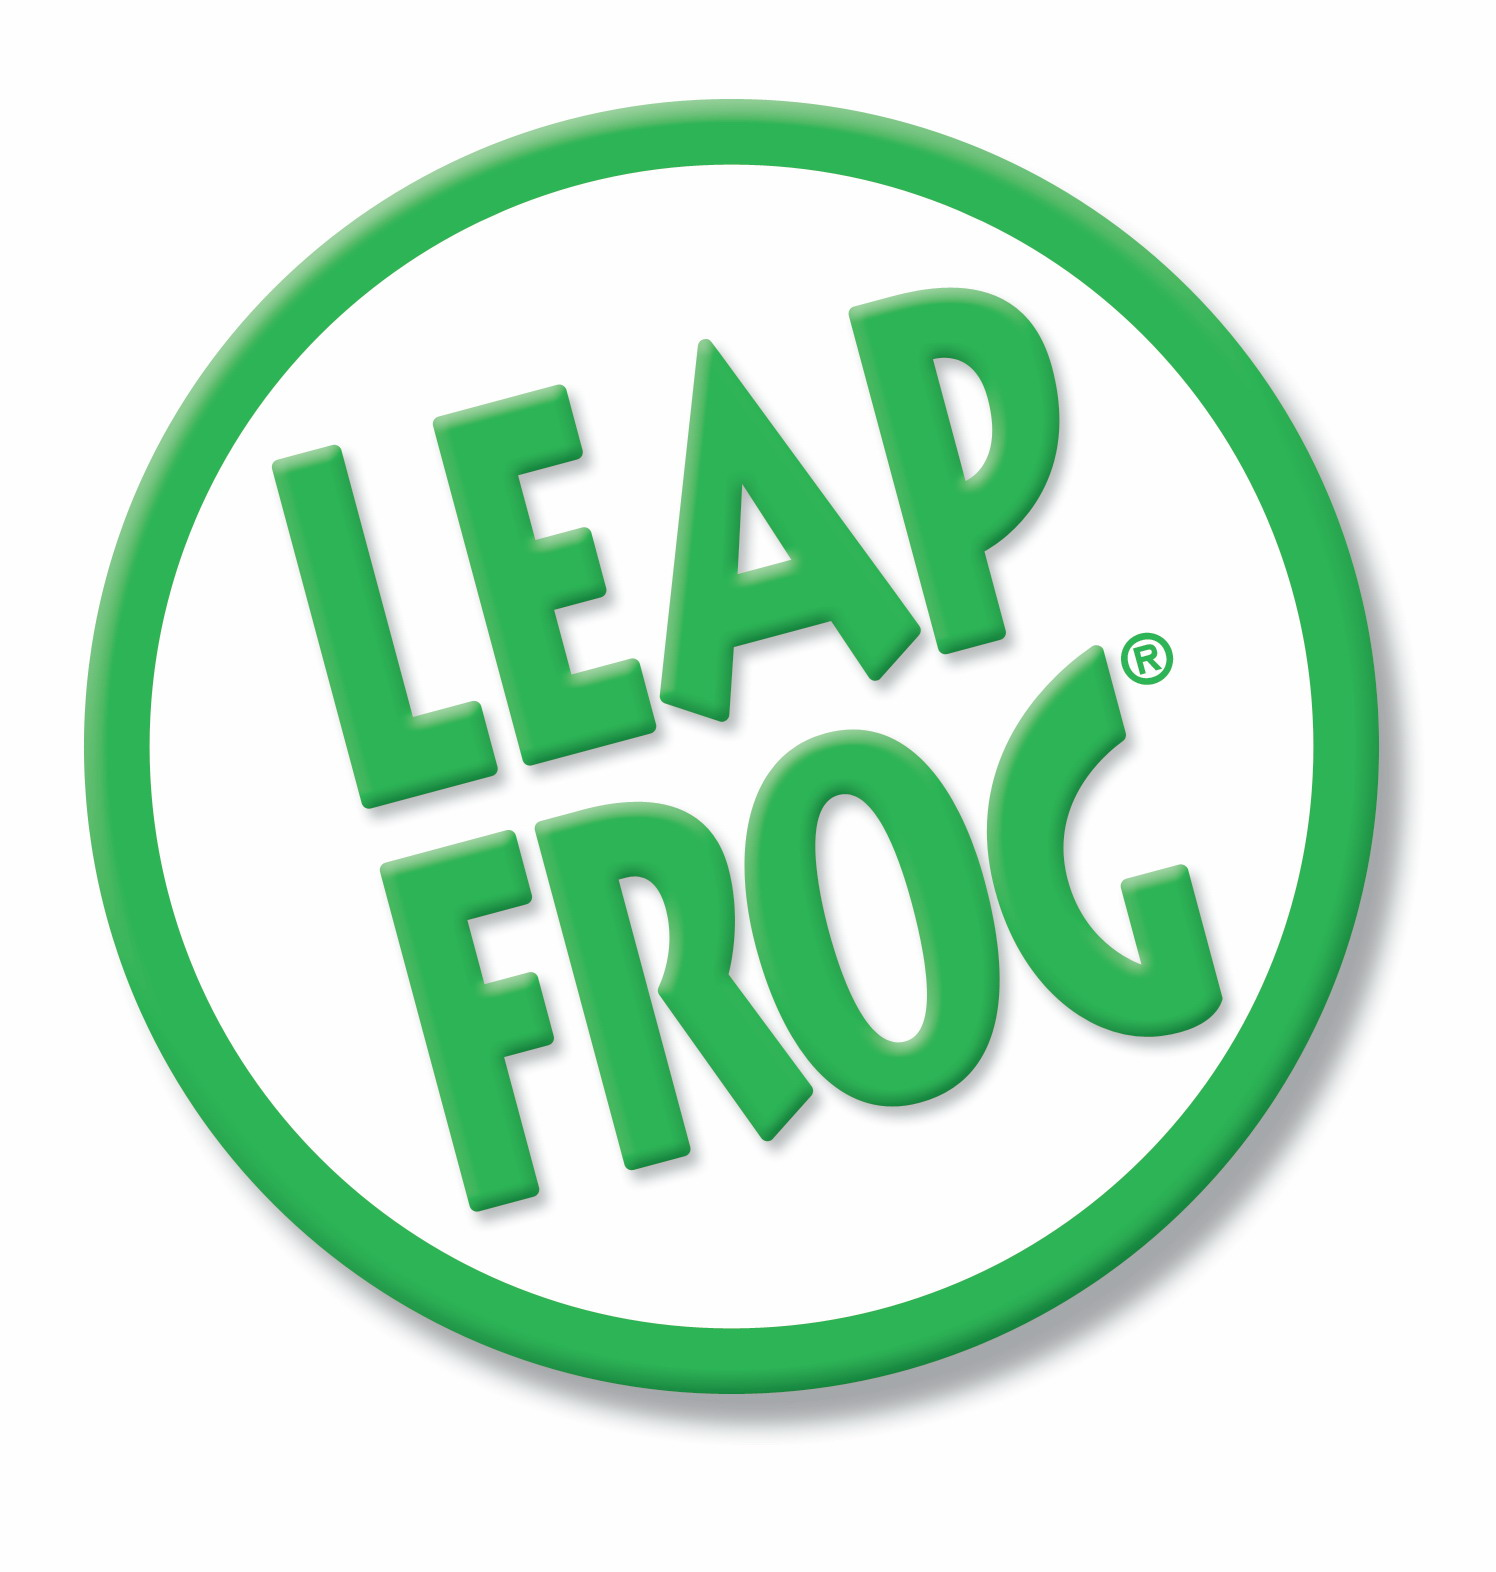 Leapfrog movies - 16 results from brands Lions Gate, Gates, LeapFrog, products like Gates Leapfrog: Letter Factory (DVD), LeapFrog: Word Caper, Movies, leap phonics library.